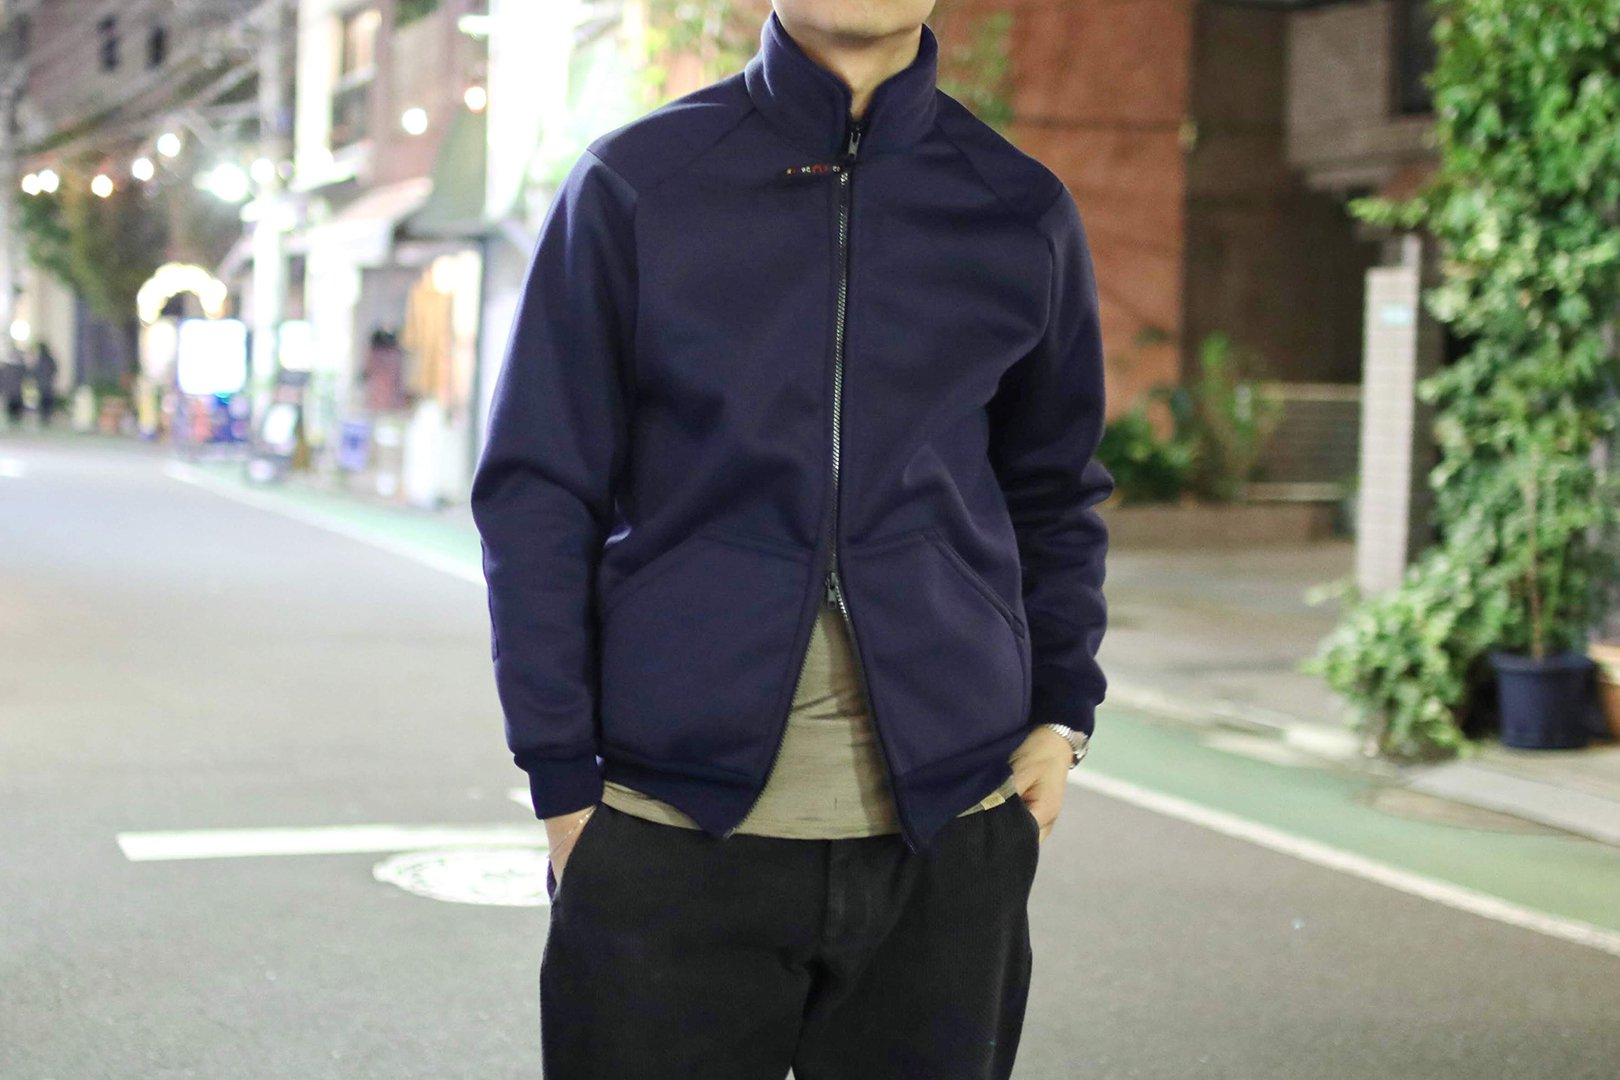 <img class='new_mark_img1' src='https://img.shop-pro.jp/img/new/icons58.gif' style='border:none;display:inline;margin:0px;padding:0px;width:auto;' />FARFIELD / A-25 FLEECE JACKET